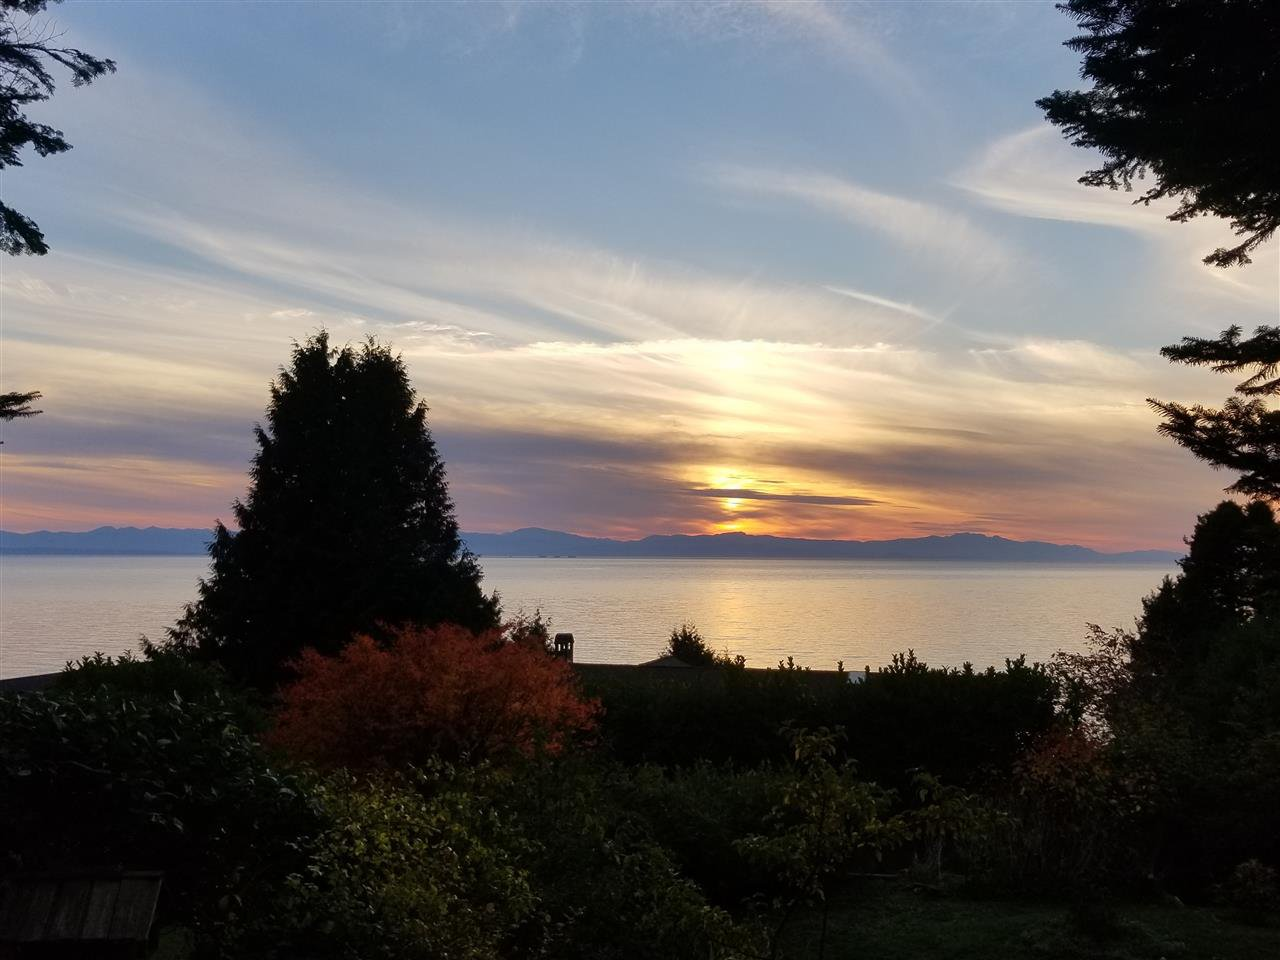 Main Photo: 221 SECOND Street in Gibsons: Gibsons & Area House for sale (Sunshine Coast)  : MLS®# R2259750